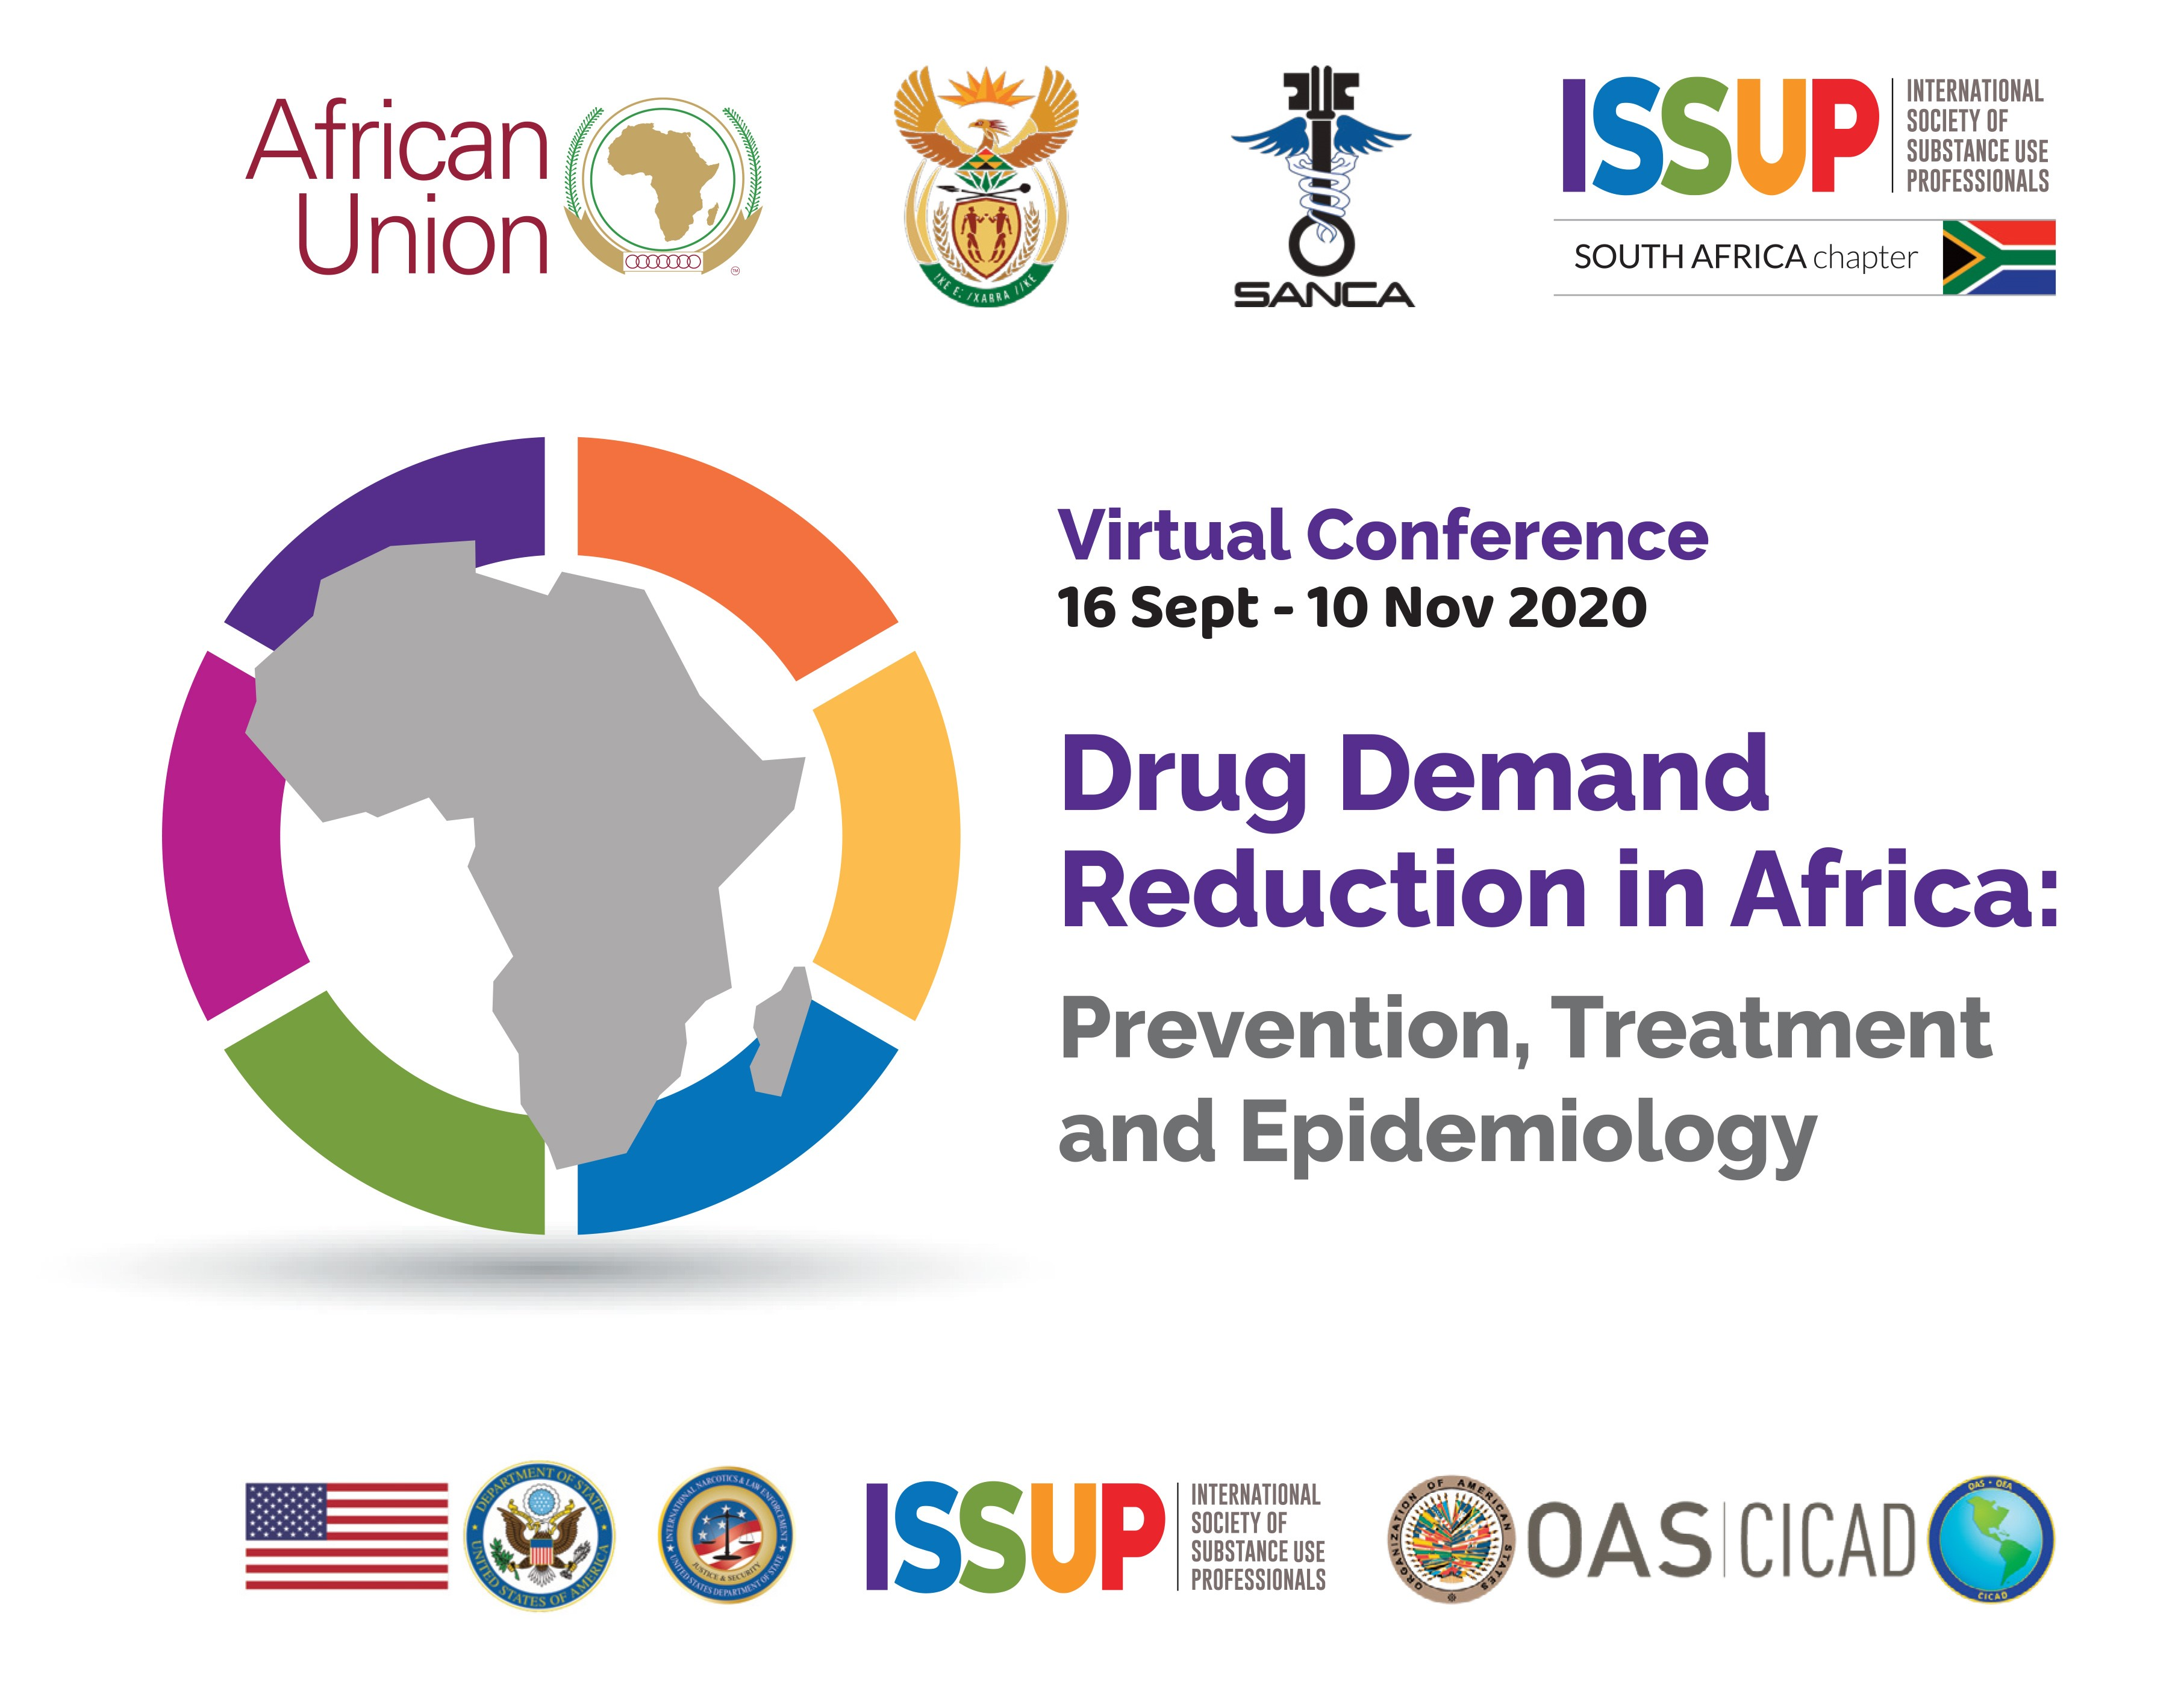 ISSUP Conference Africa